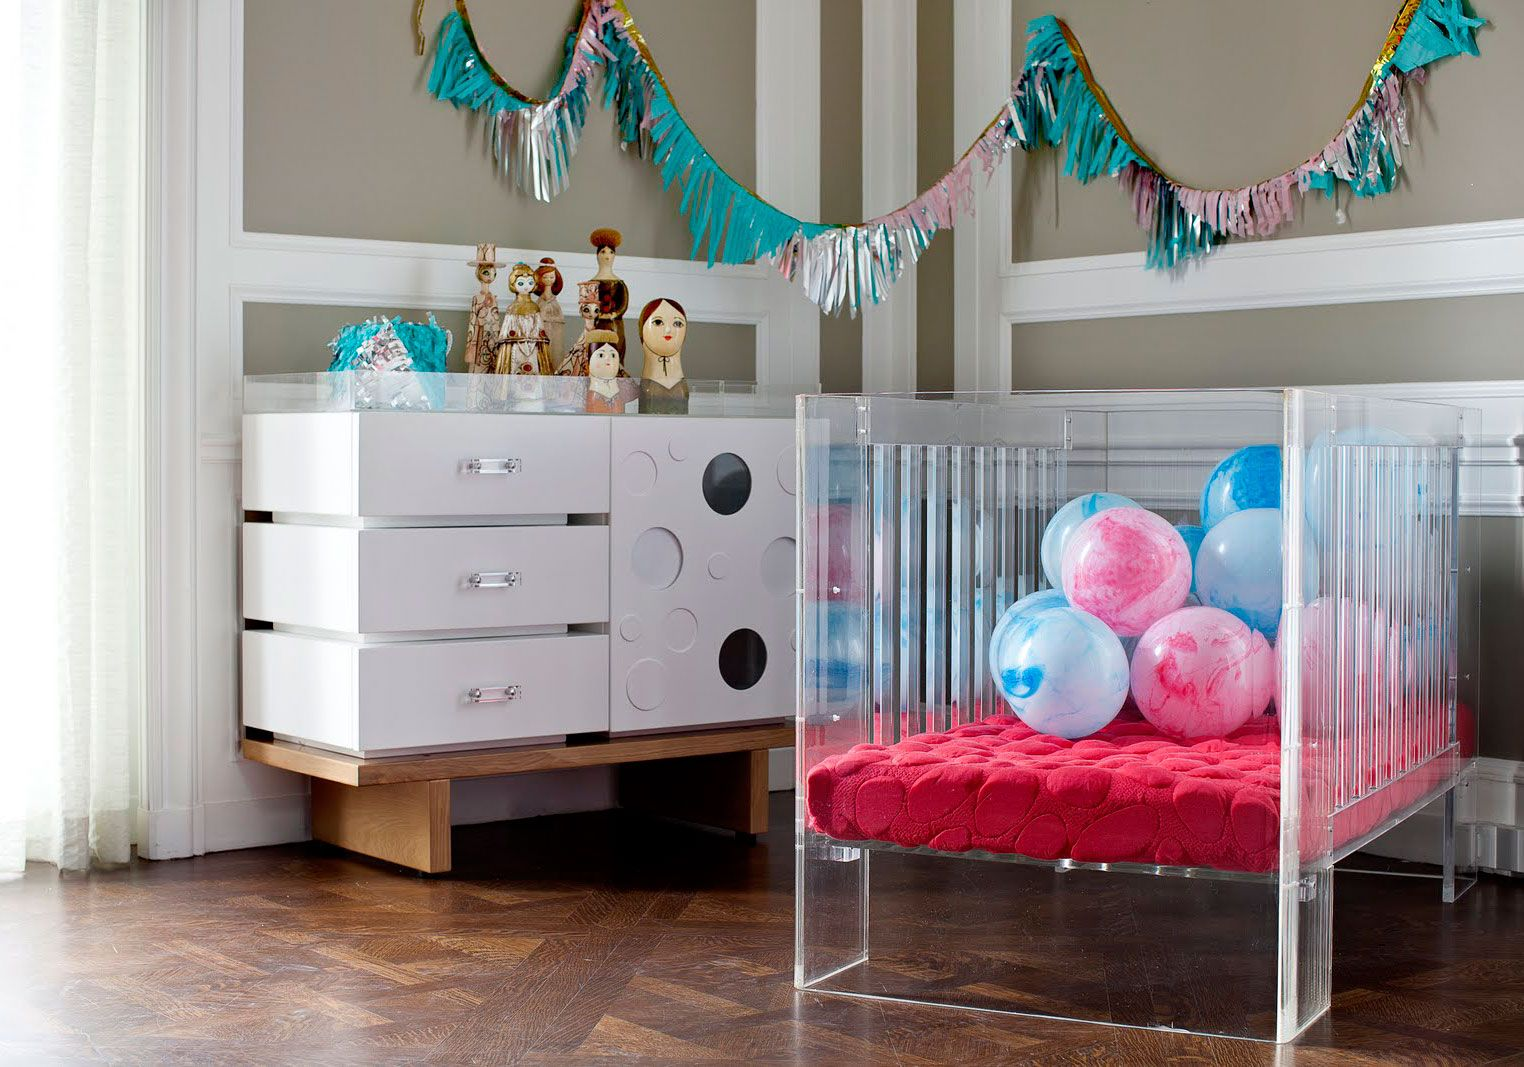 Nursery Design Trends Advice From Celebrity Designer: Our Nursery Designs For Beyonce And Jay-Z's Twins!